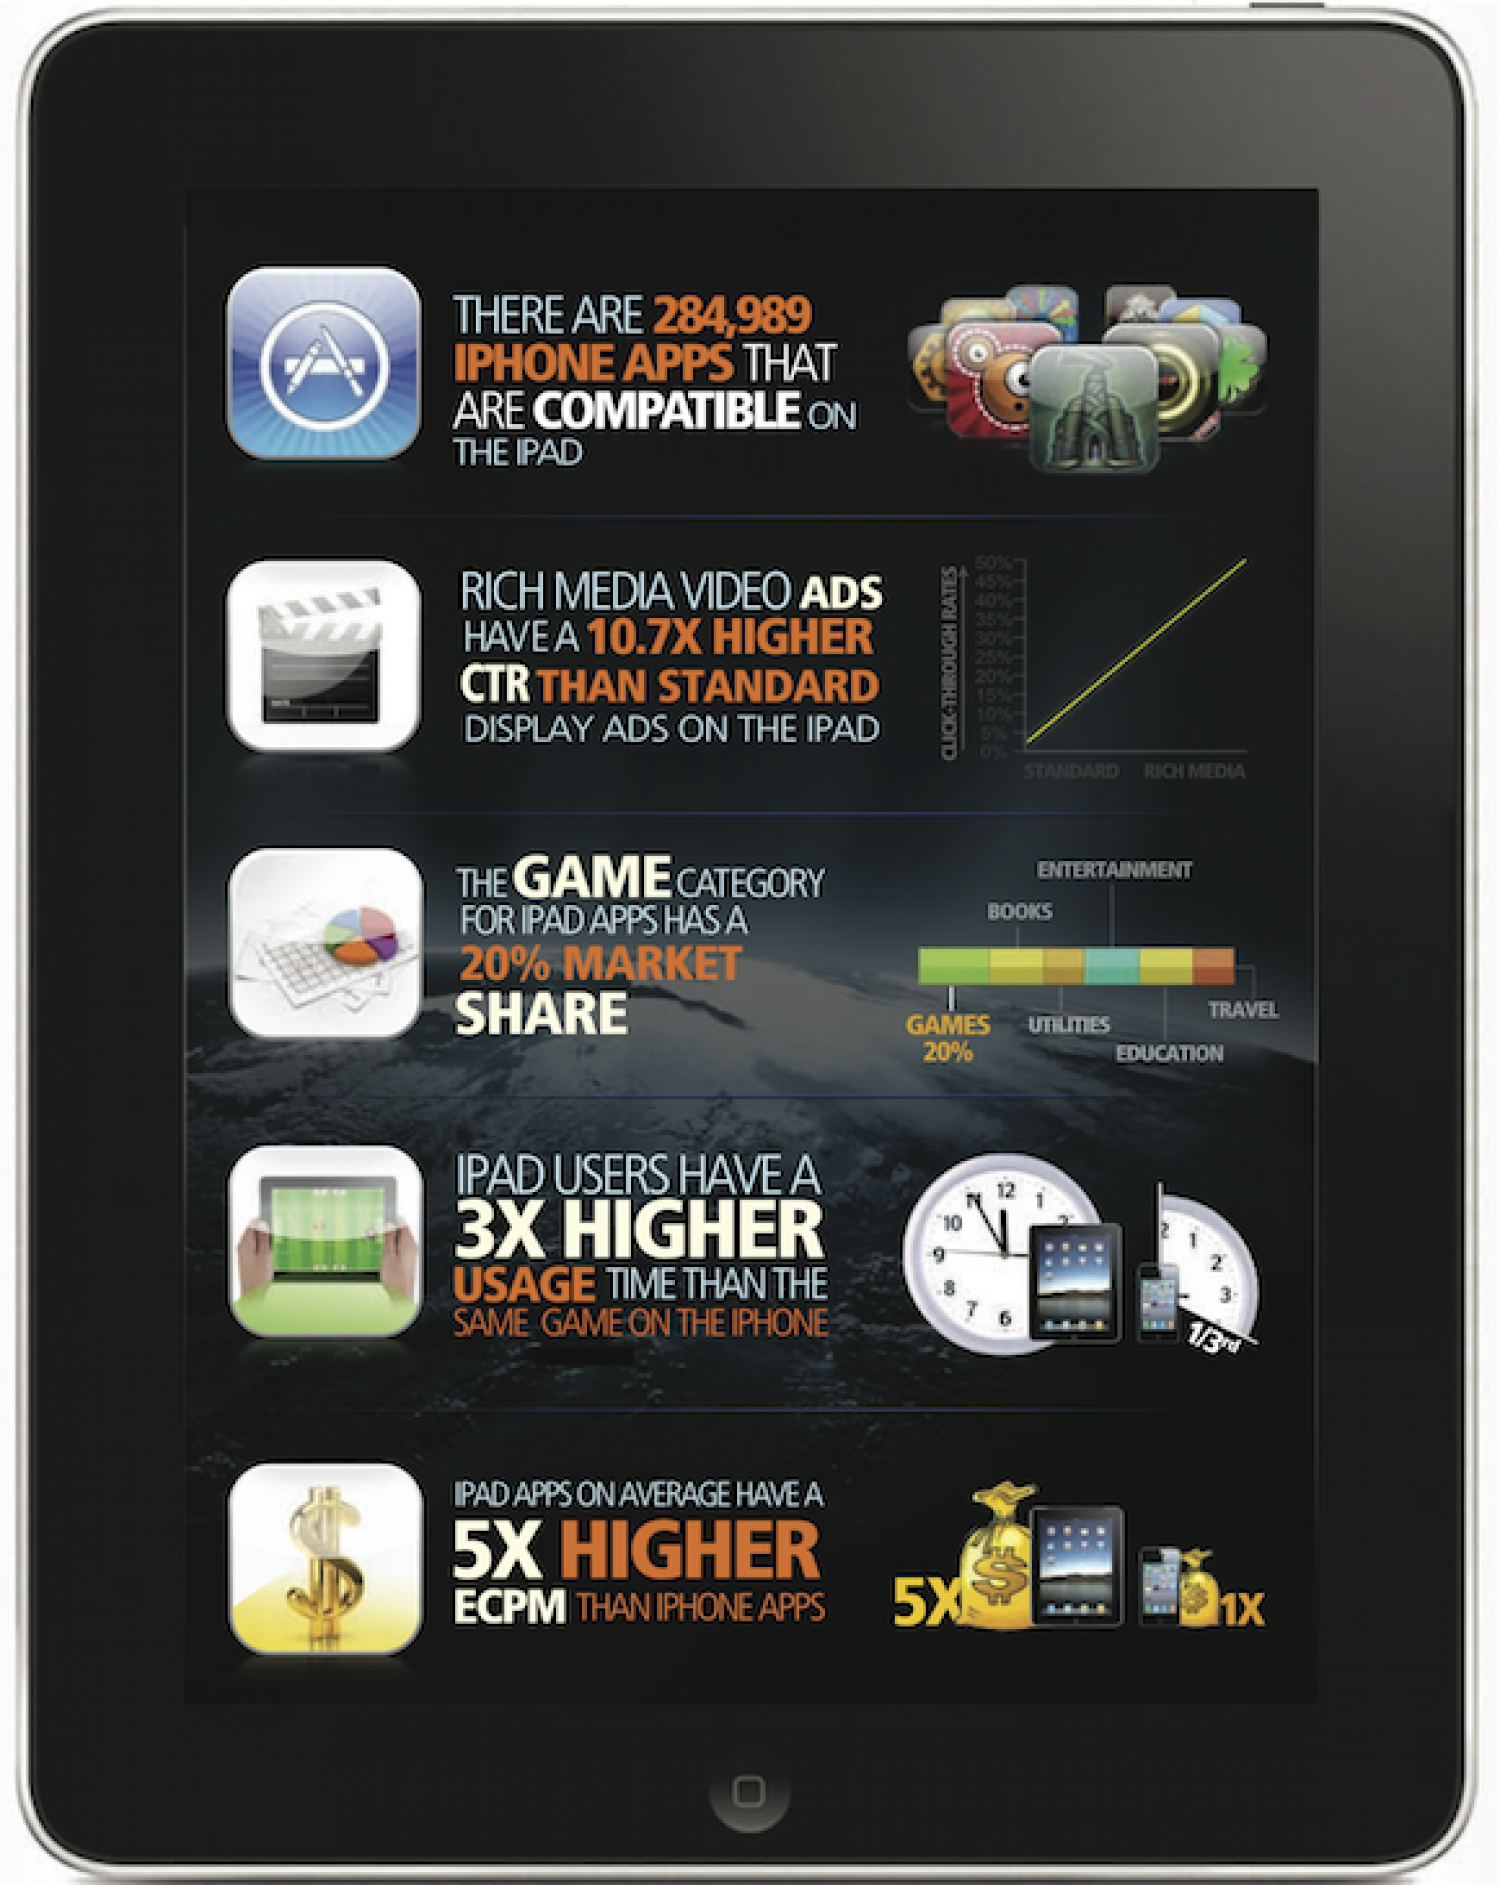 iPad Insights Infographic